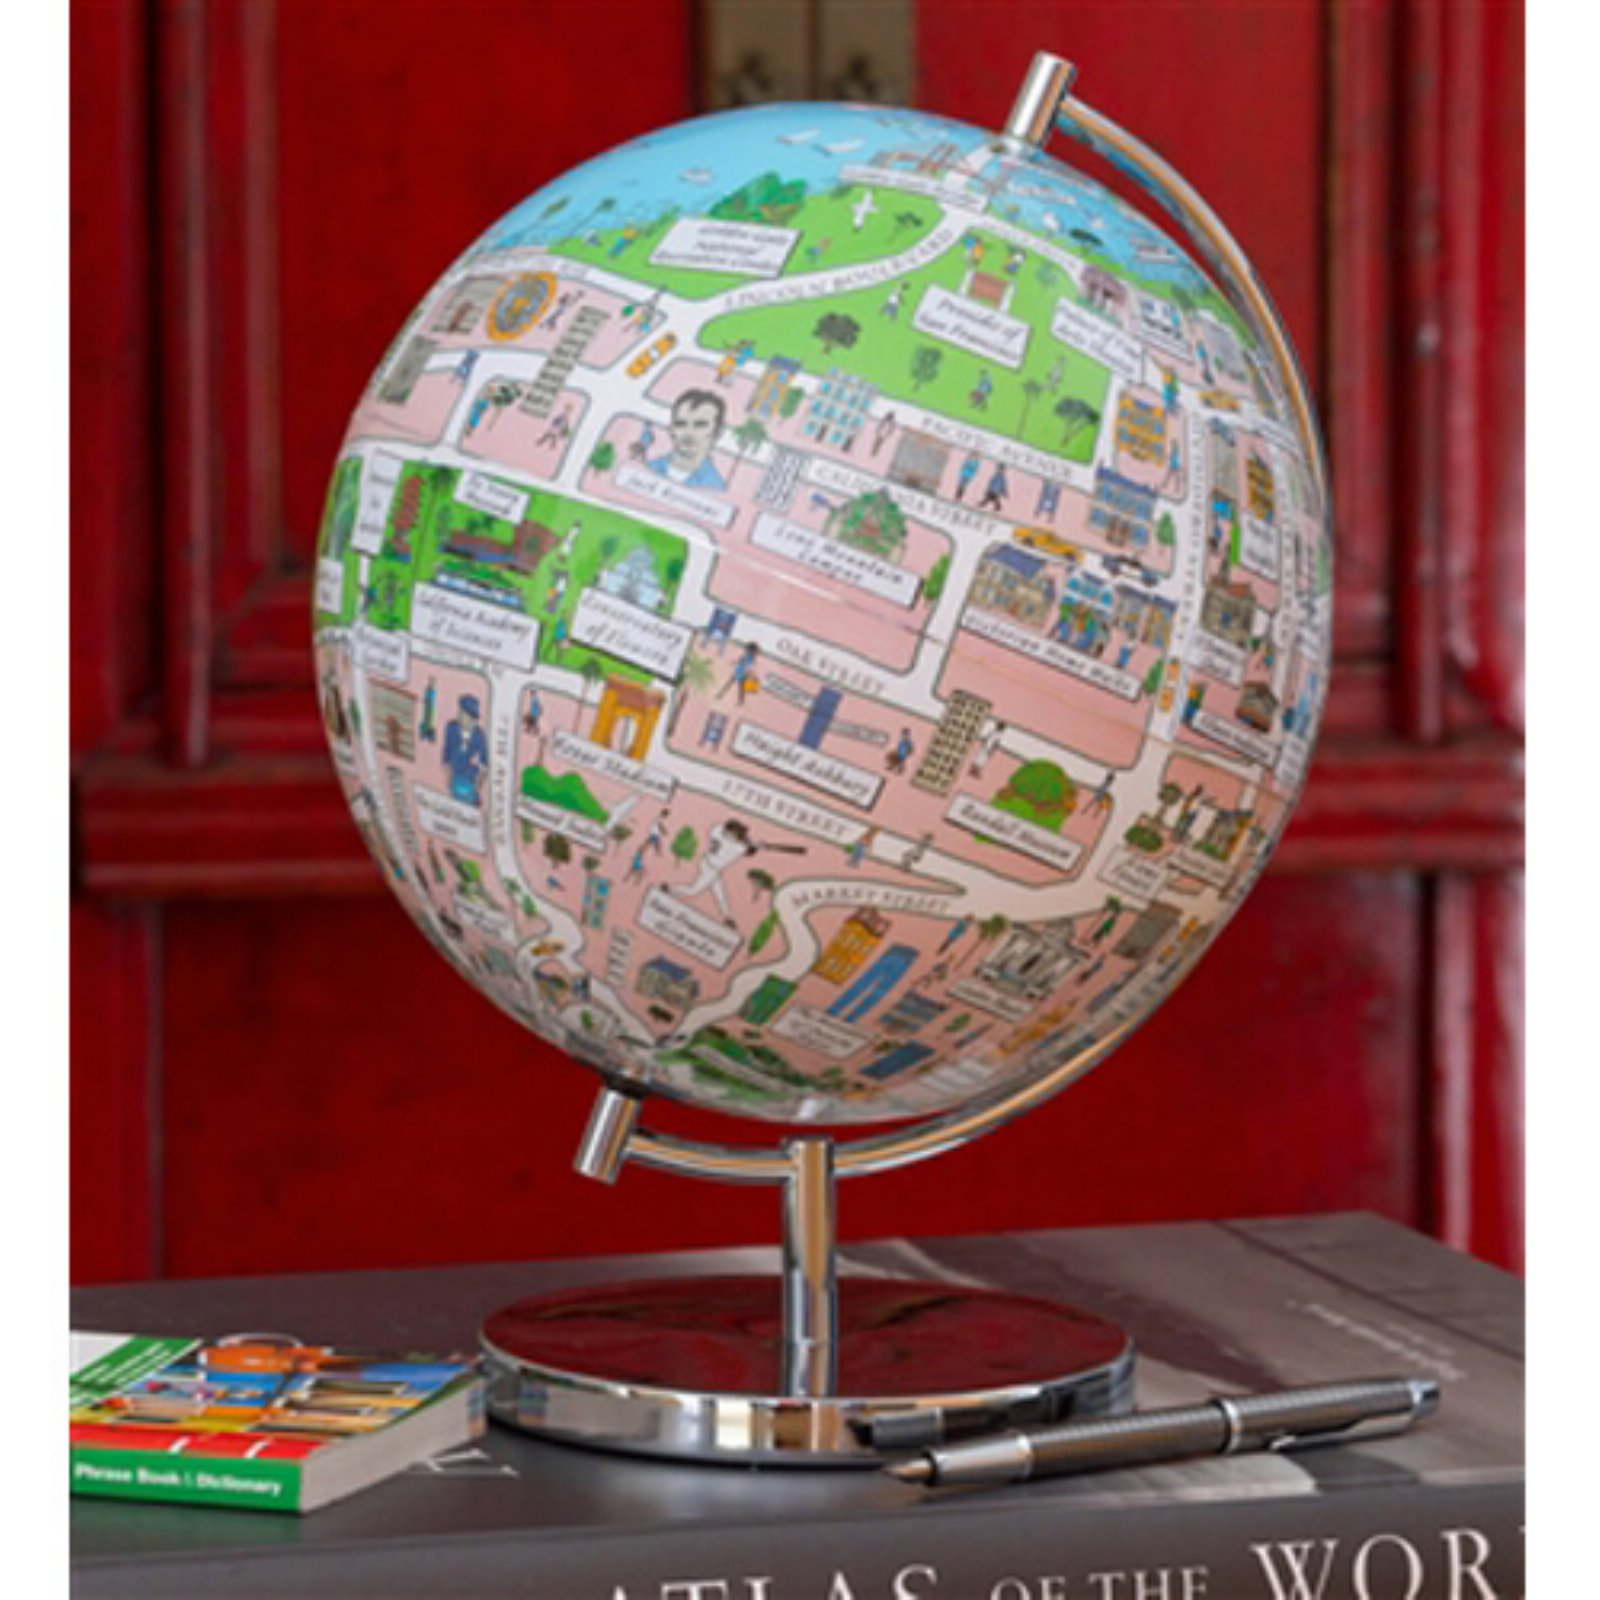 Waypoint Geographic San Francisco Illuminated 9 in. Globee